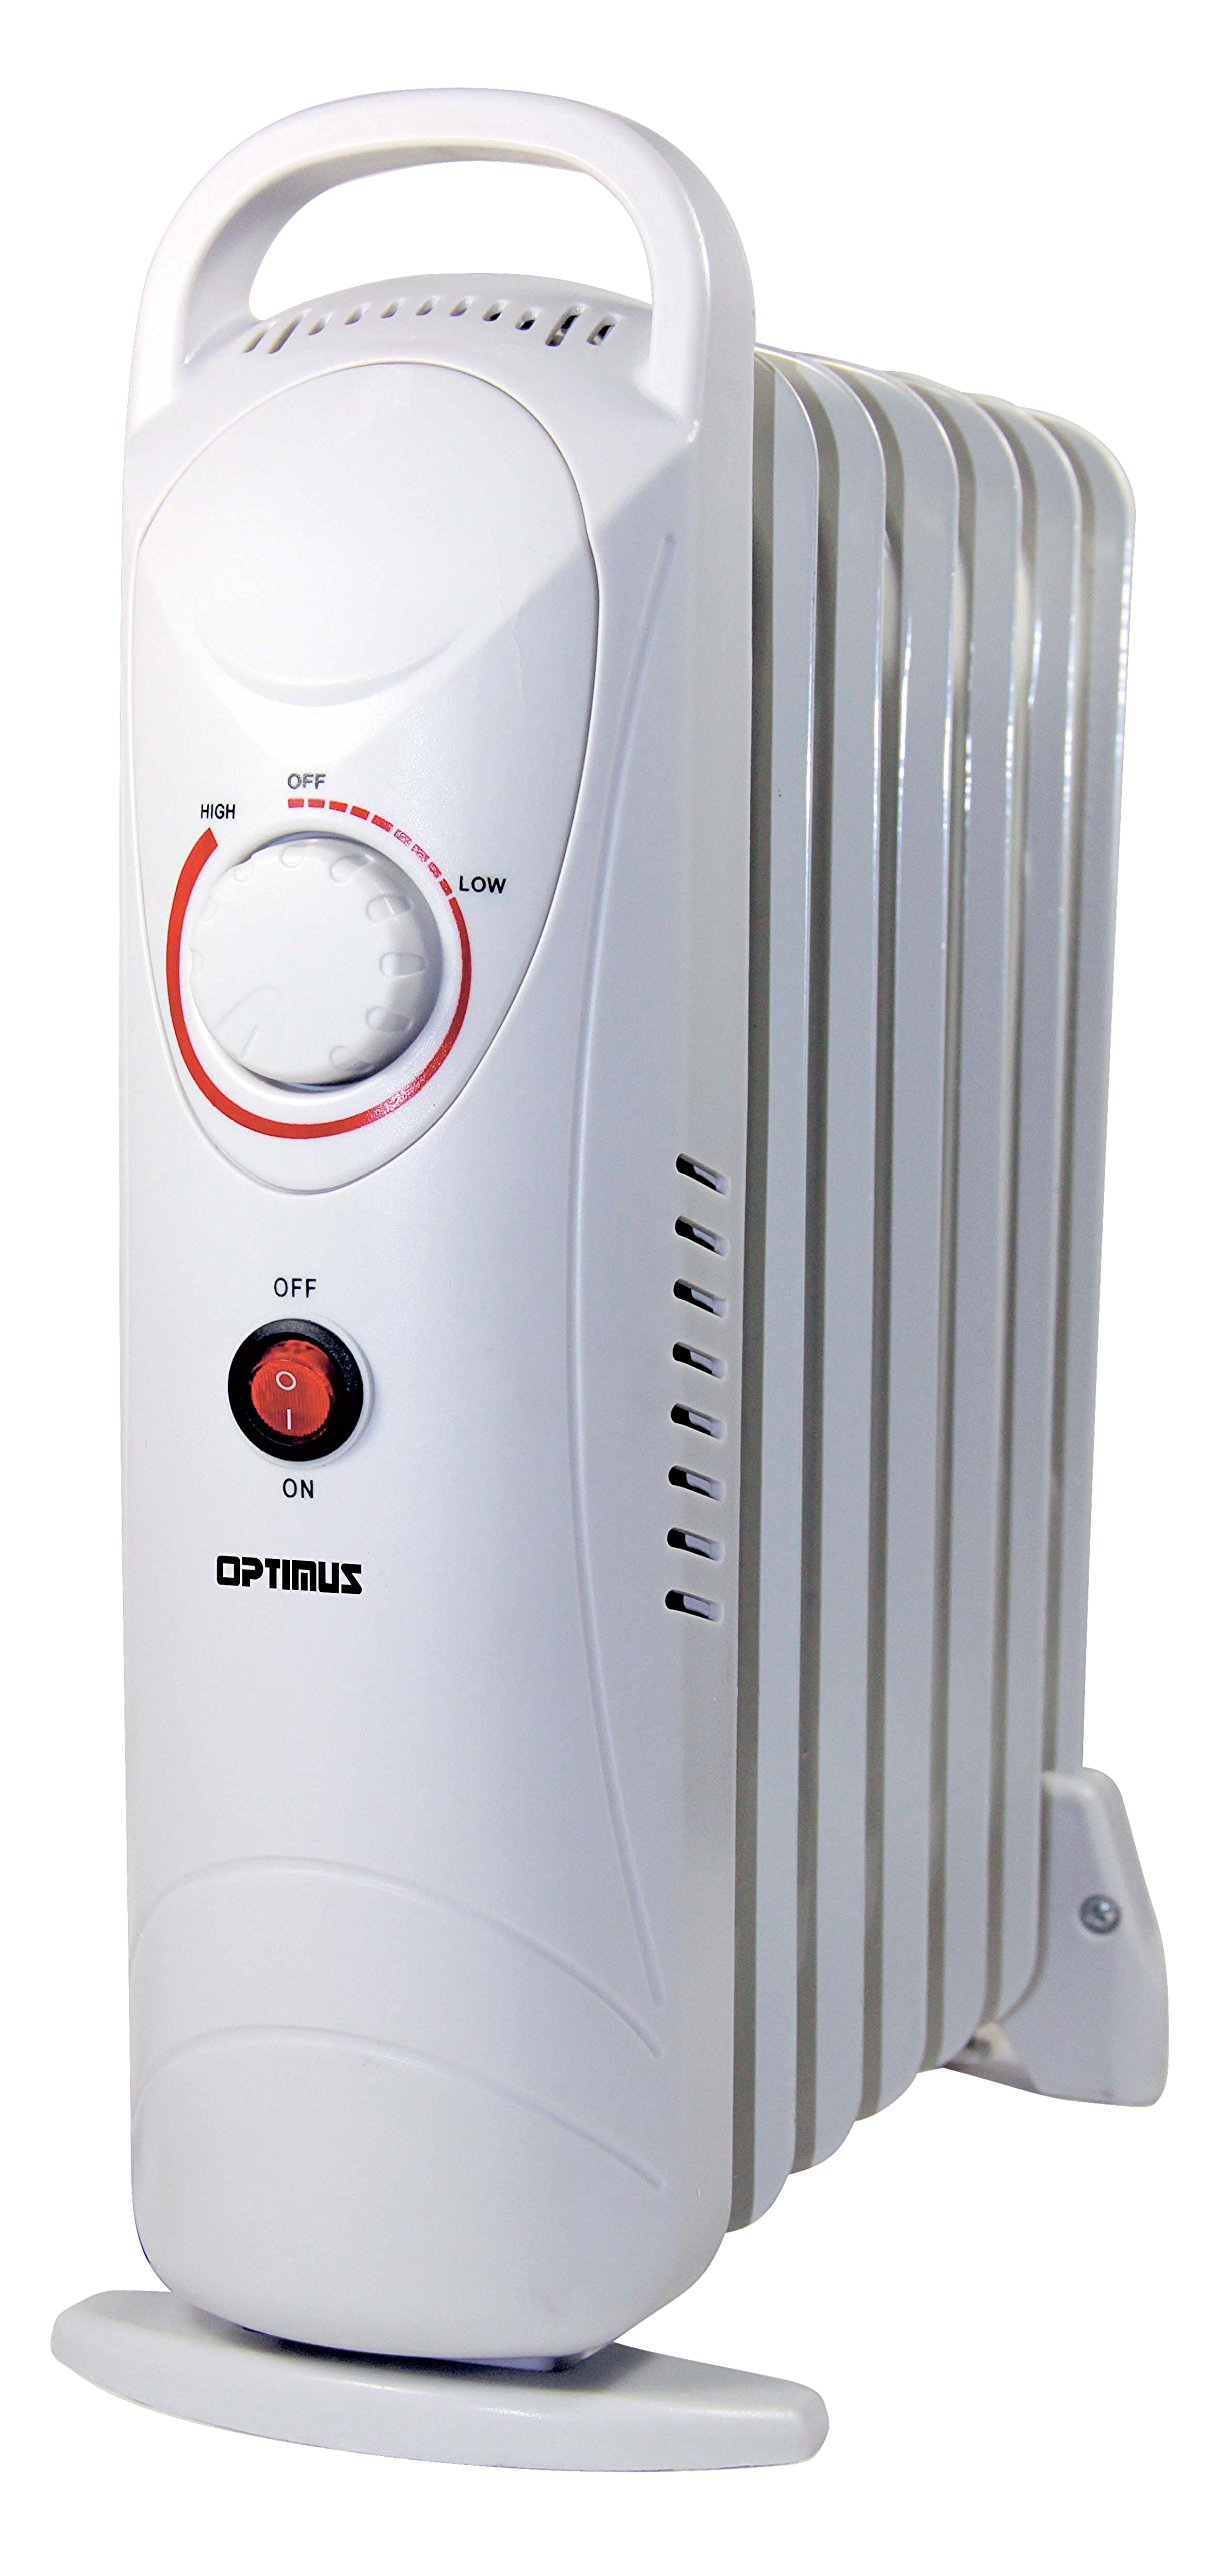 Optimus H-6003 Portable Oil Filled Radiator Heater, Mini, 16 x 6 x 15 inches by Optimus